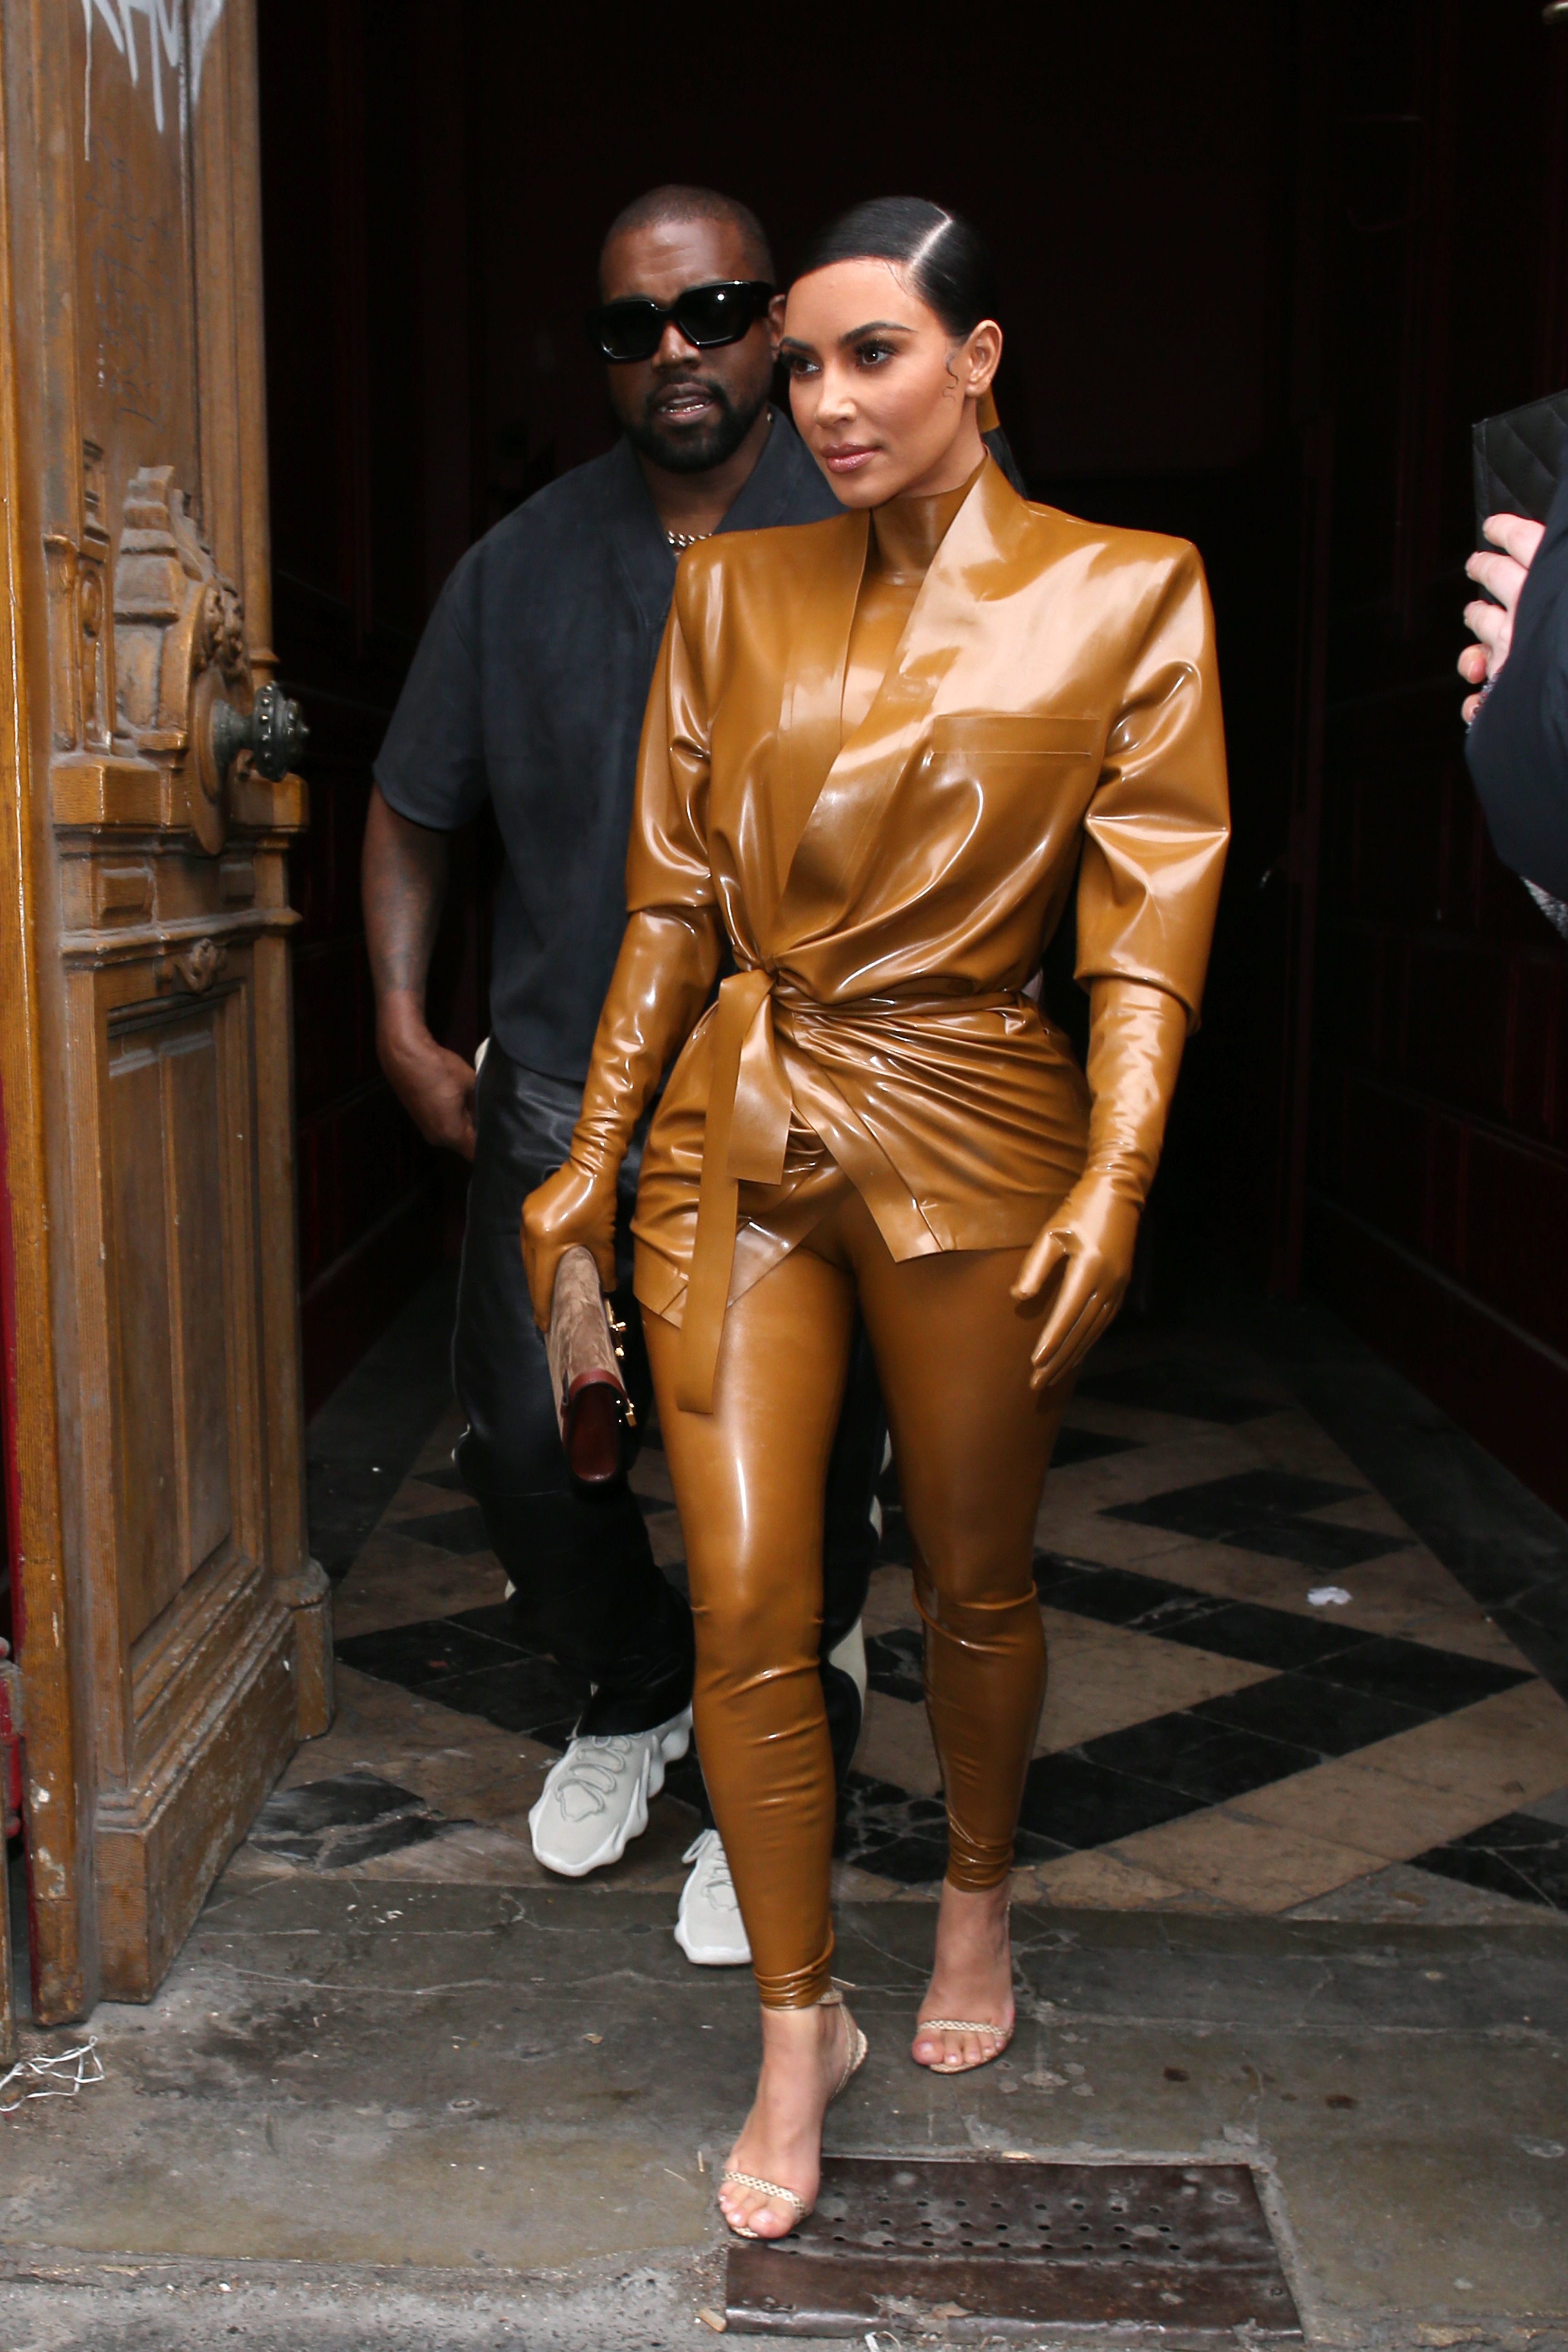 Kanye West and Kim Kardashian West leaving a Sunday serviceKardashians and Kanye West out and about, Paris Fashion Week, France - 01 Mar 2020 Wearing Balmain Same Outfit as catwalk model *10564689cz